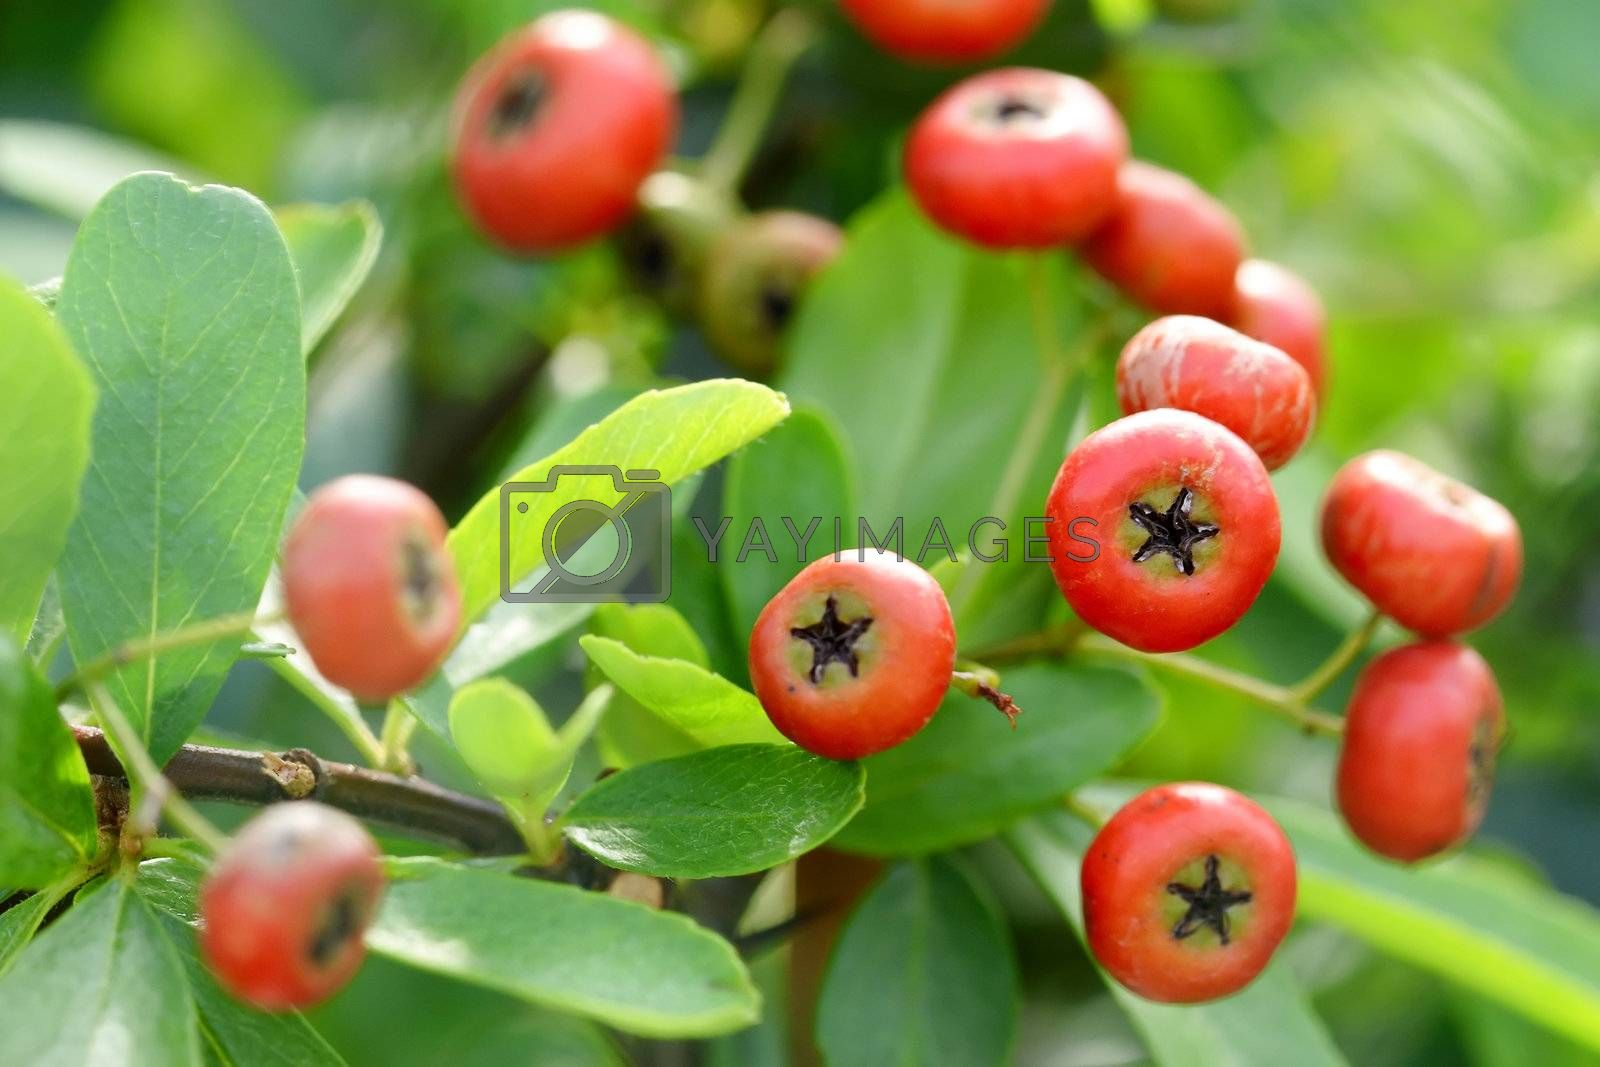 Royalty free image of Chinese firethorn by leungchopan